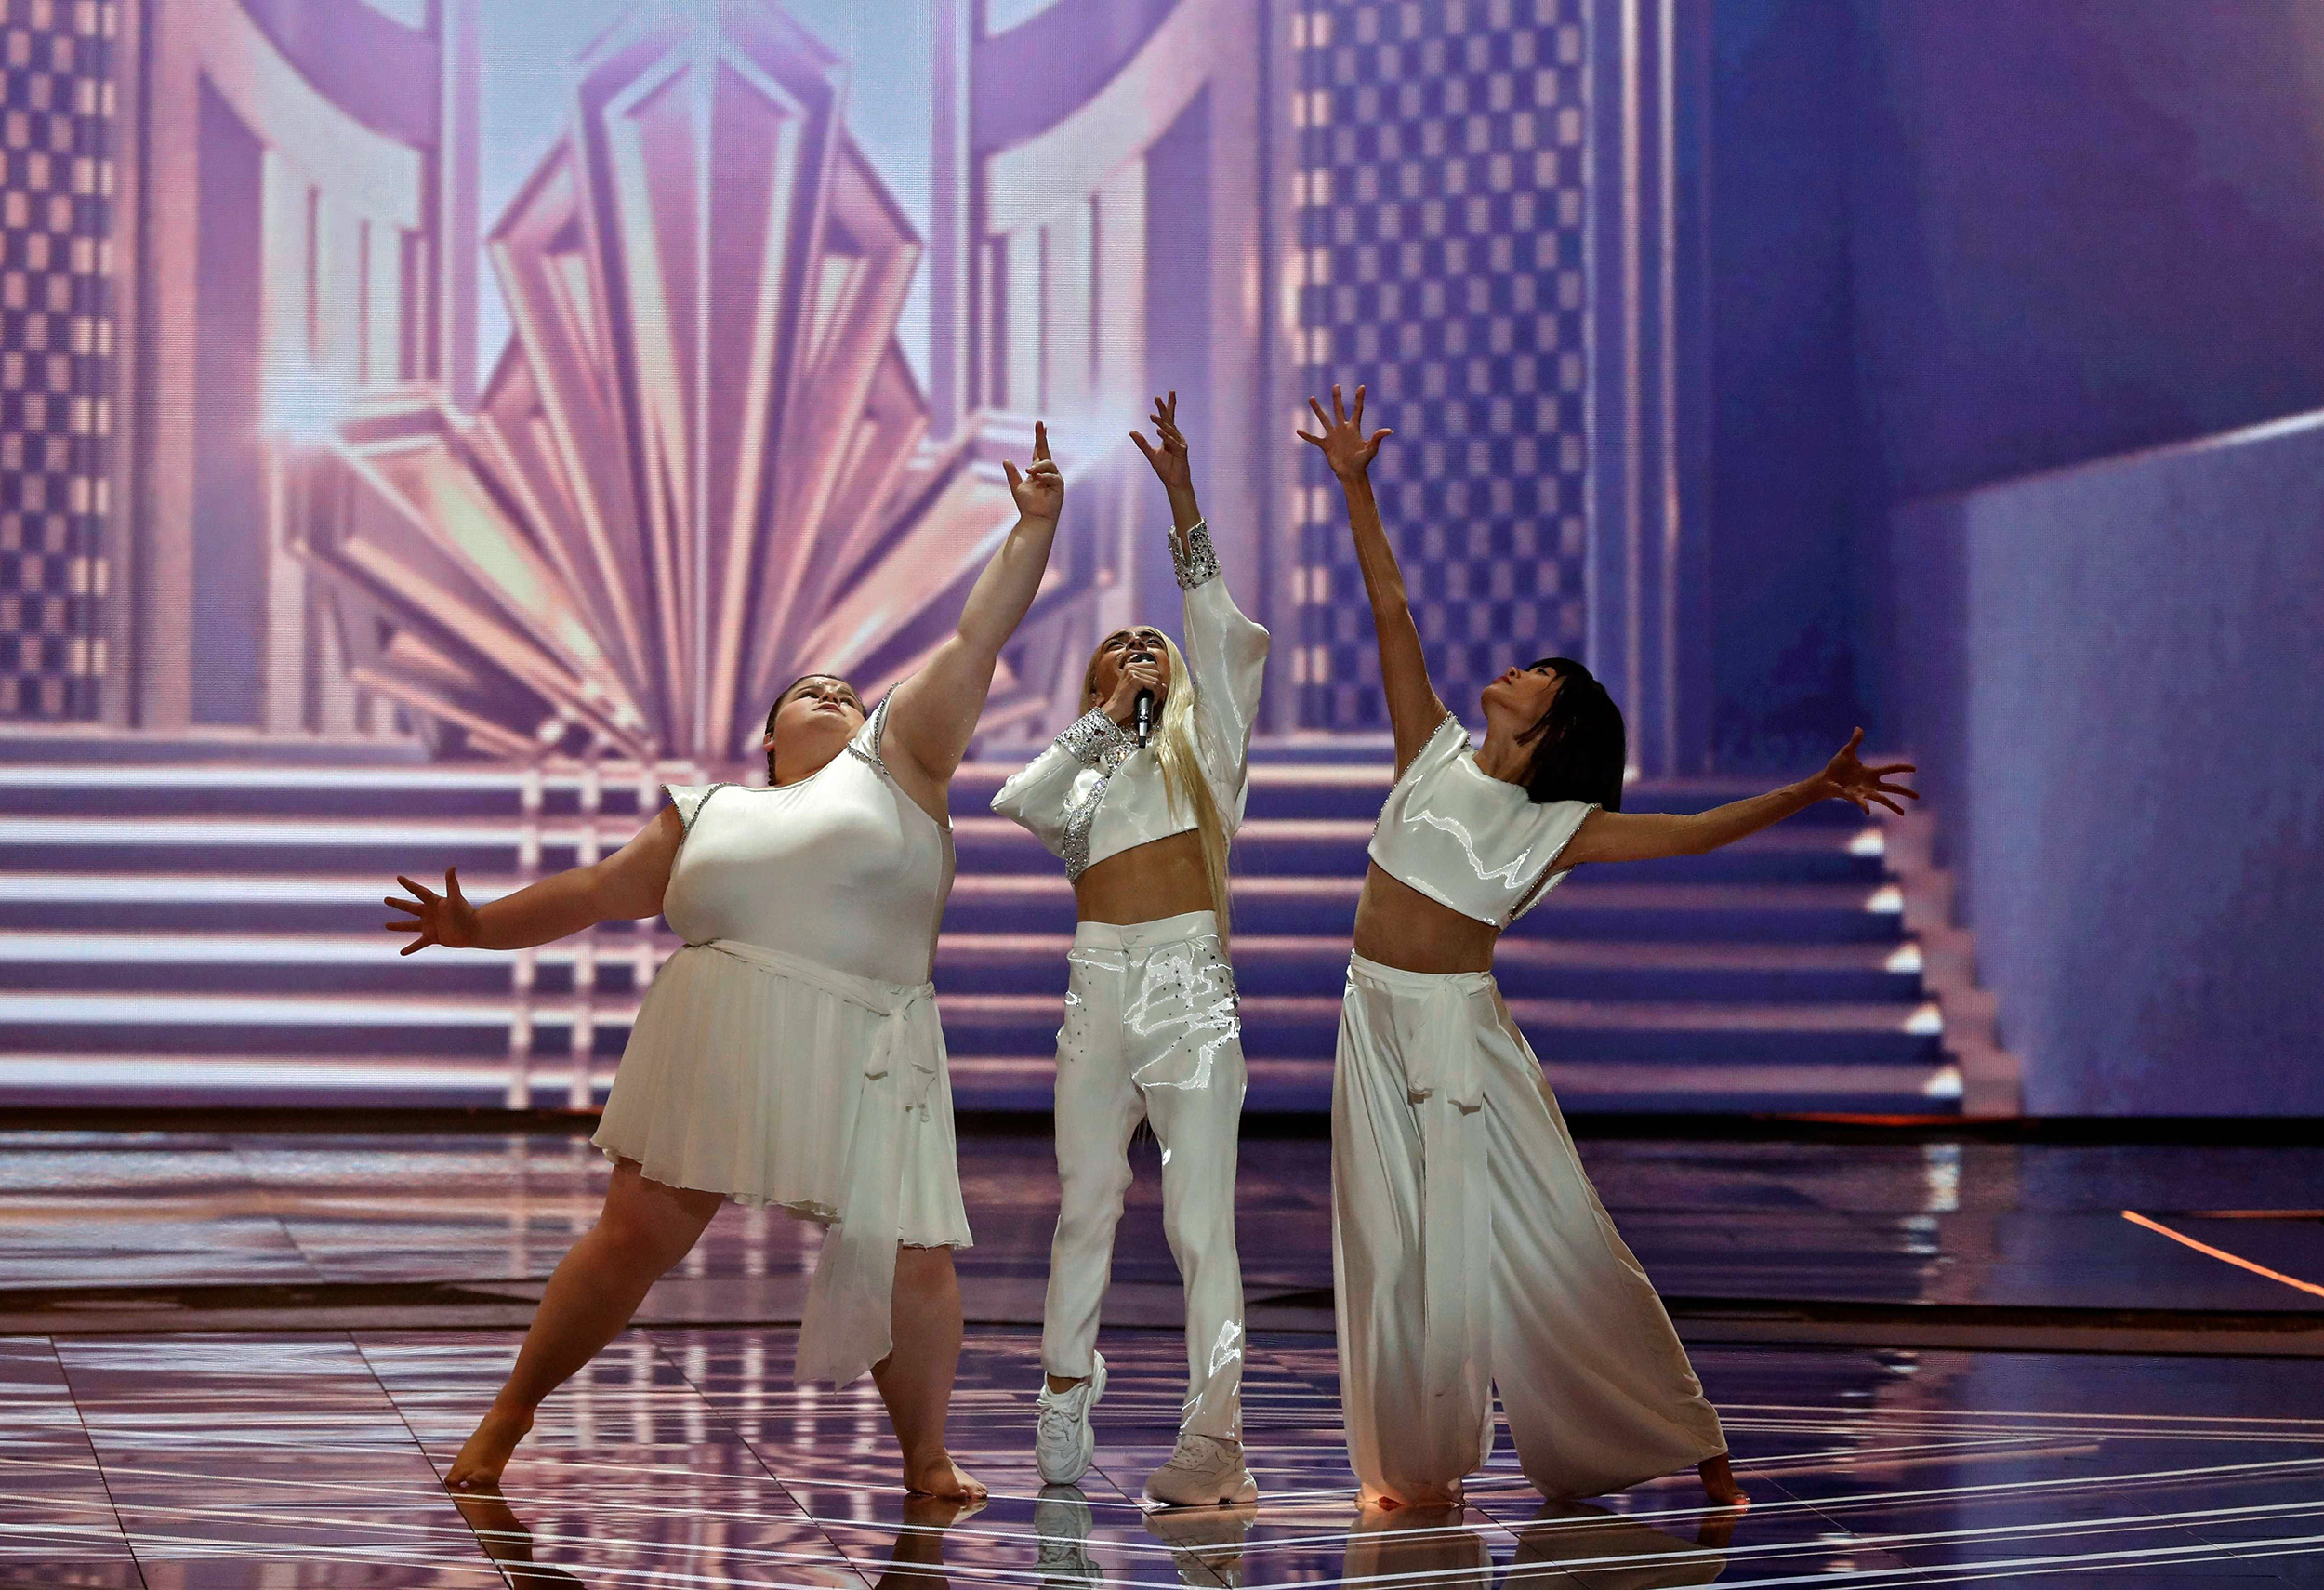 Eurovision 2019: The queerest — and most controversial — yet?